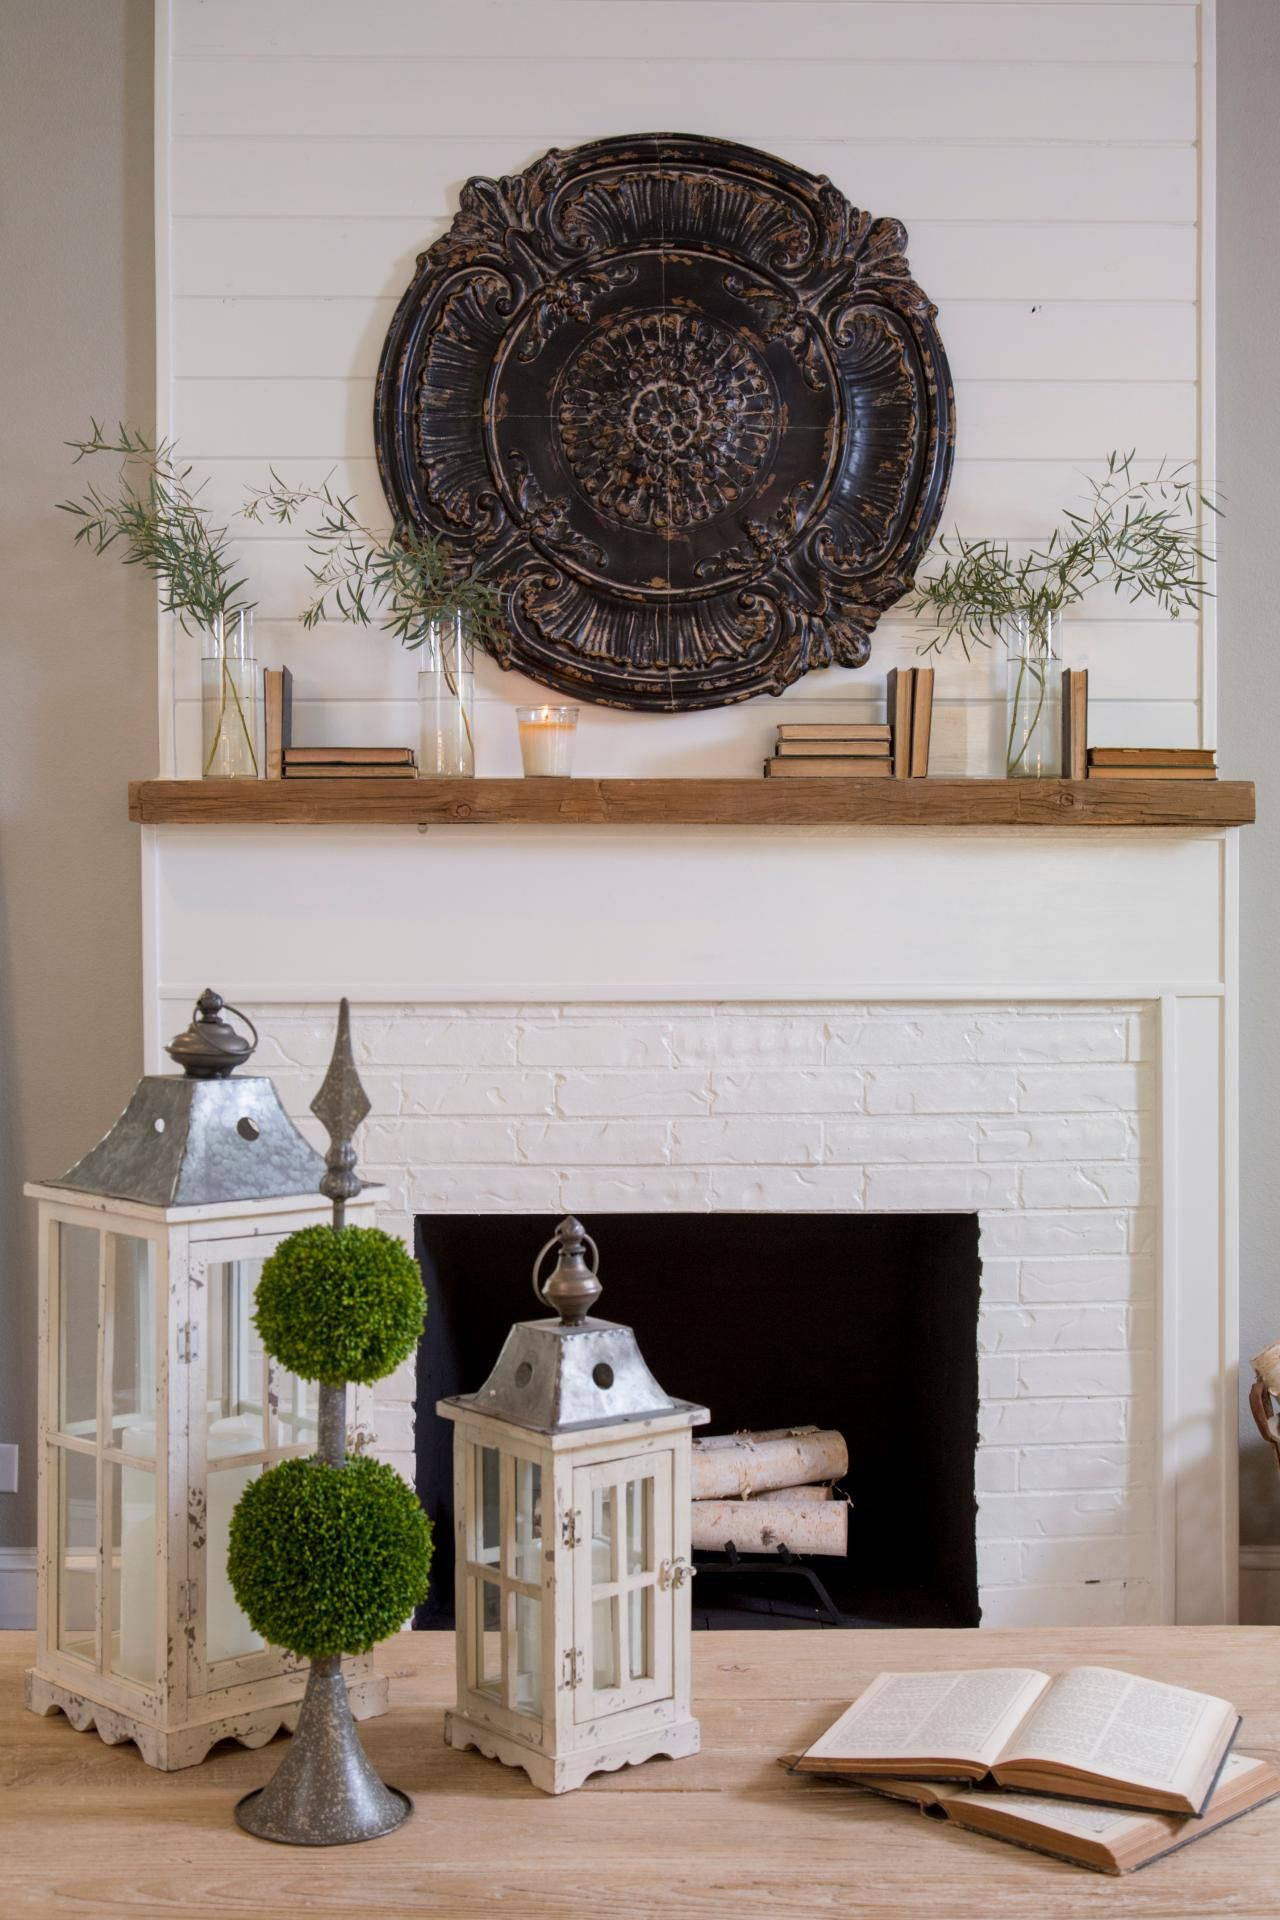 Wall Art Ideas From Chip and Joanna Gaines Joanna gaines Hgtv